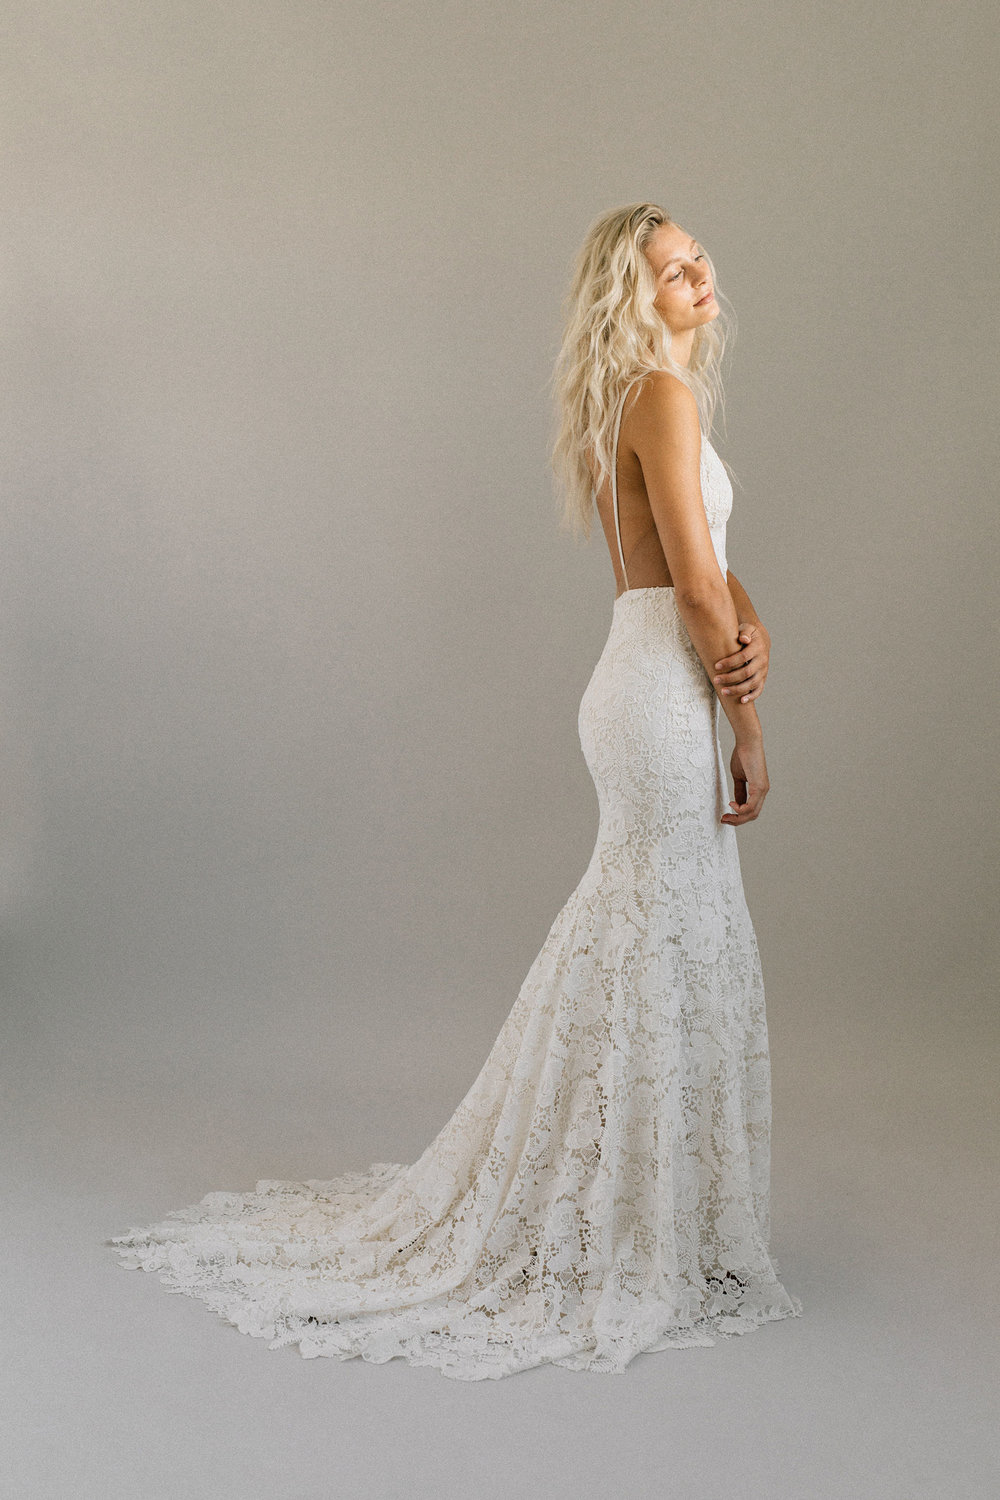 ottawa-wedding-dress-westboro-bridal-store-modern-bride-boutique-revelle-laudae-Abronia-PS4.jpg